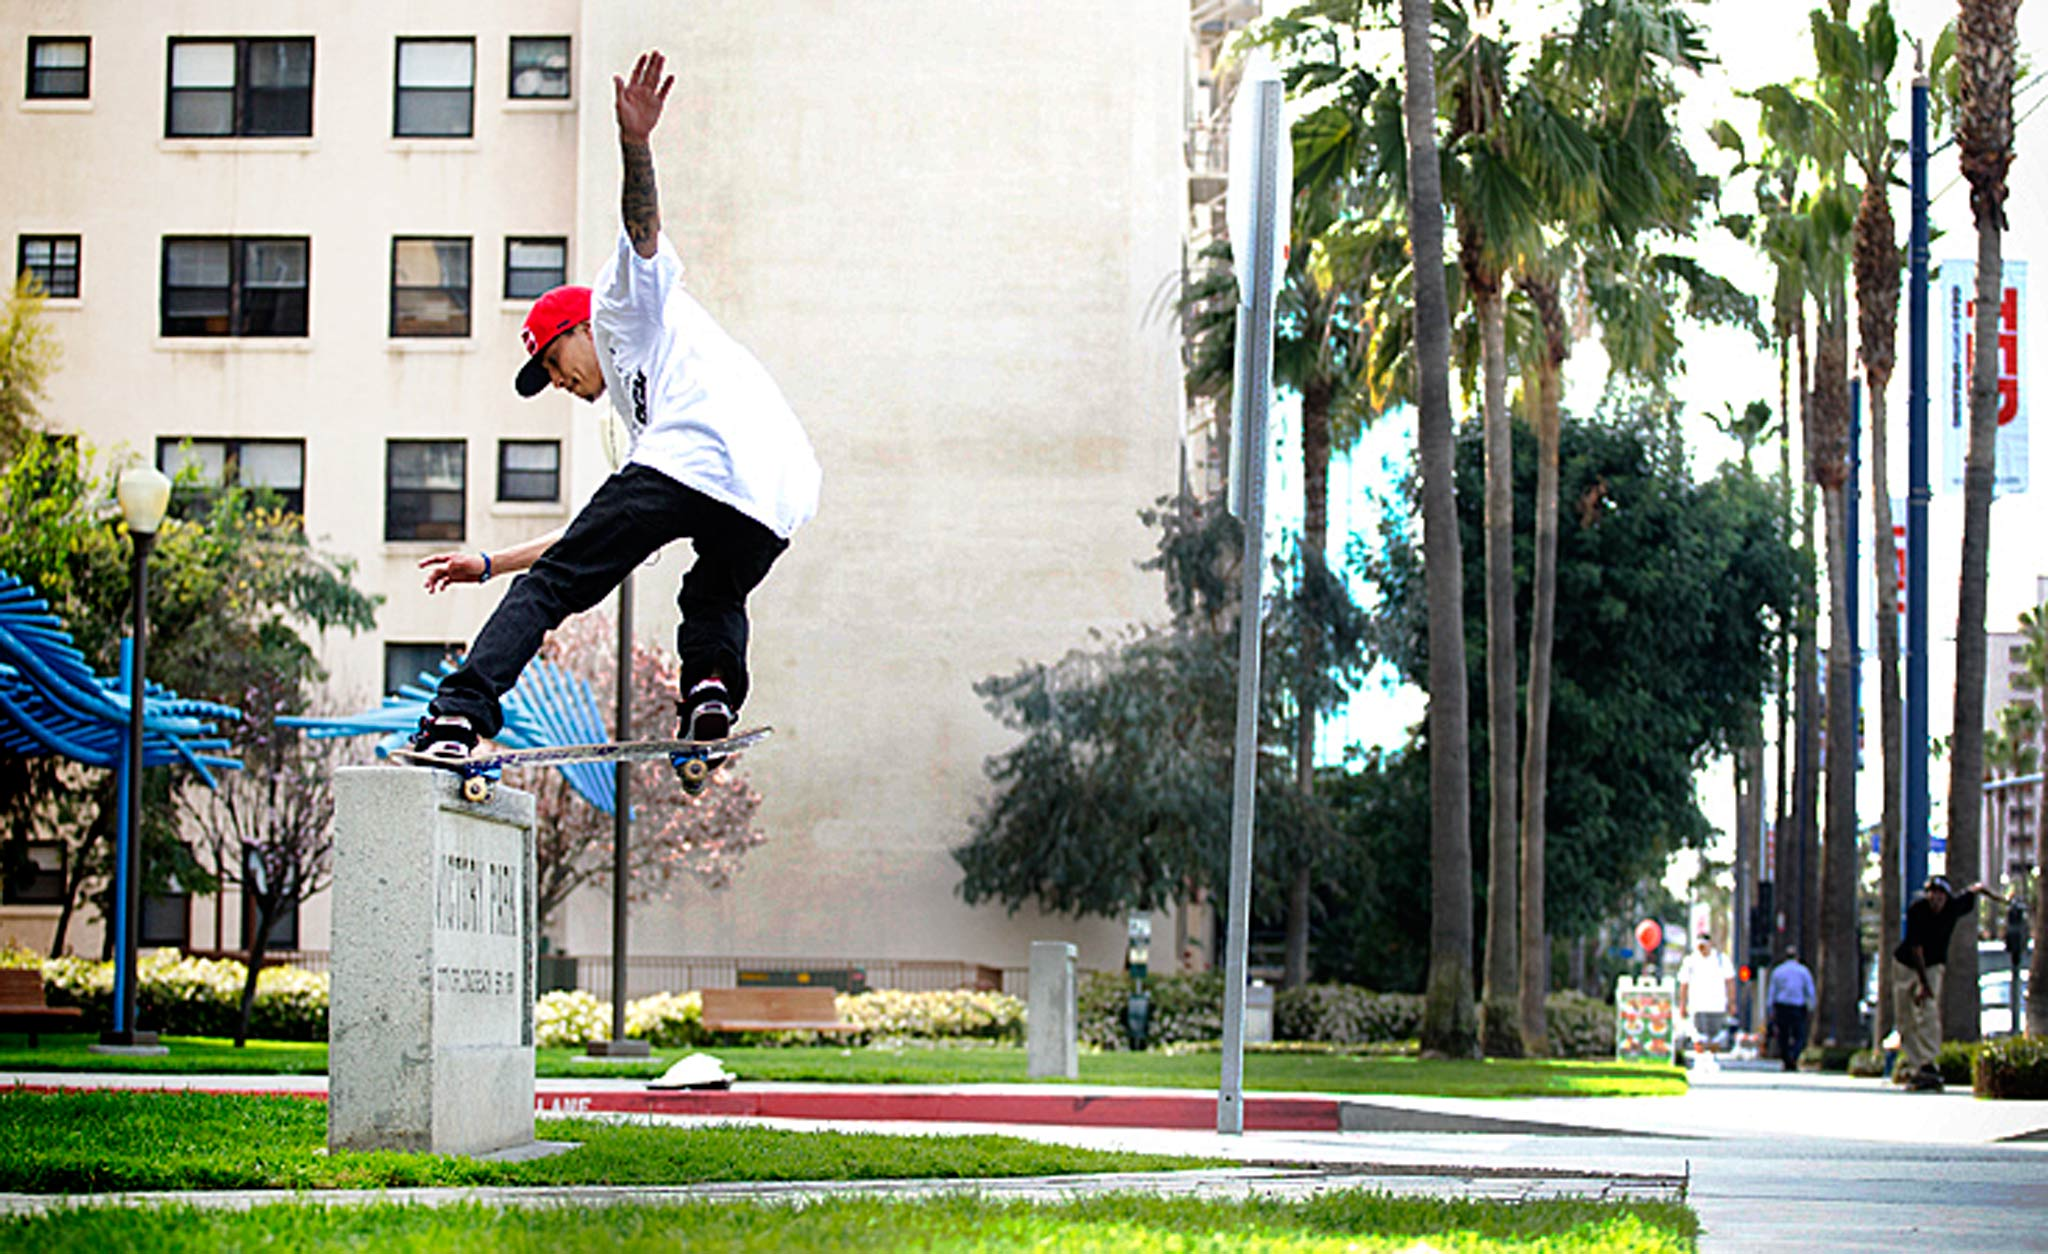 Lenny Rivas, Frontside Nose Slide